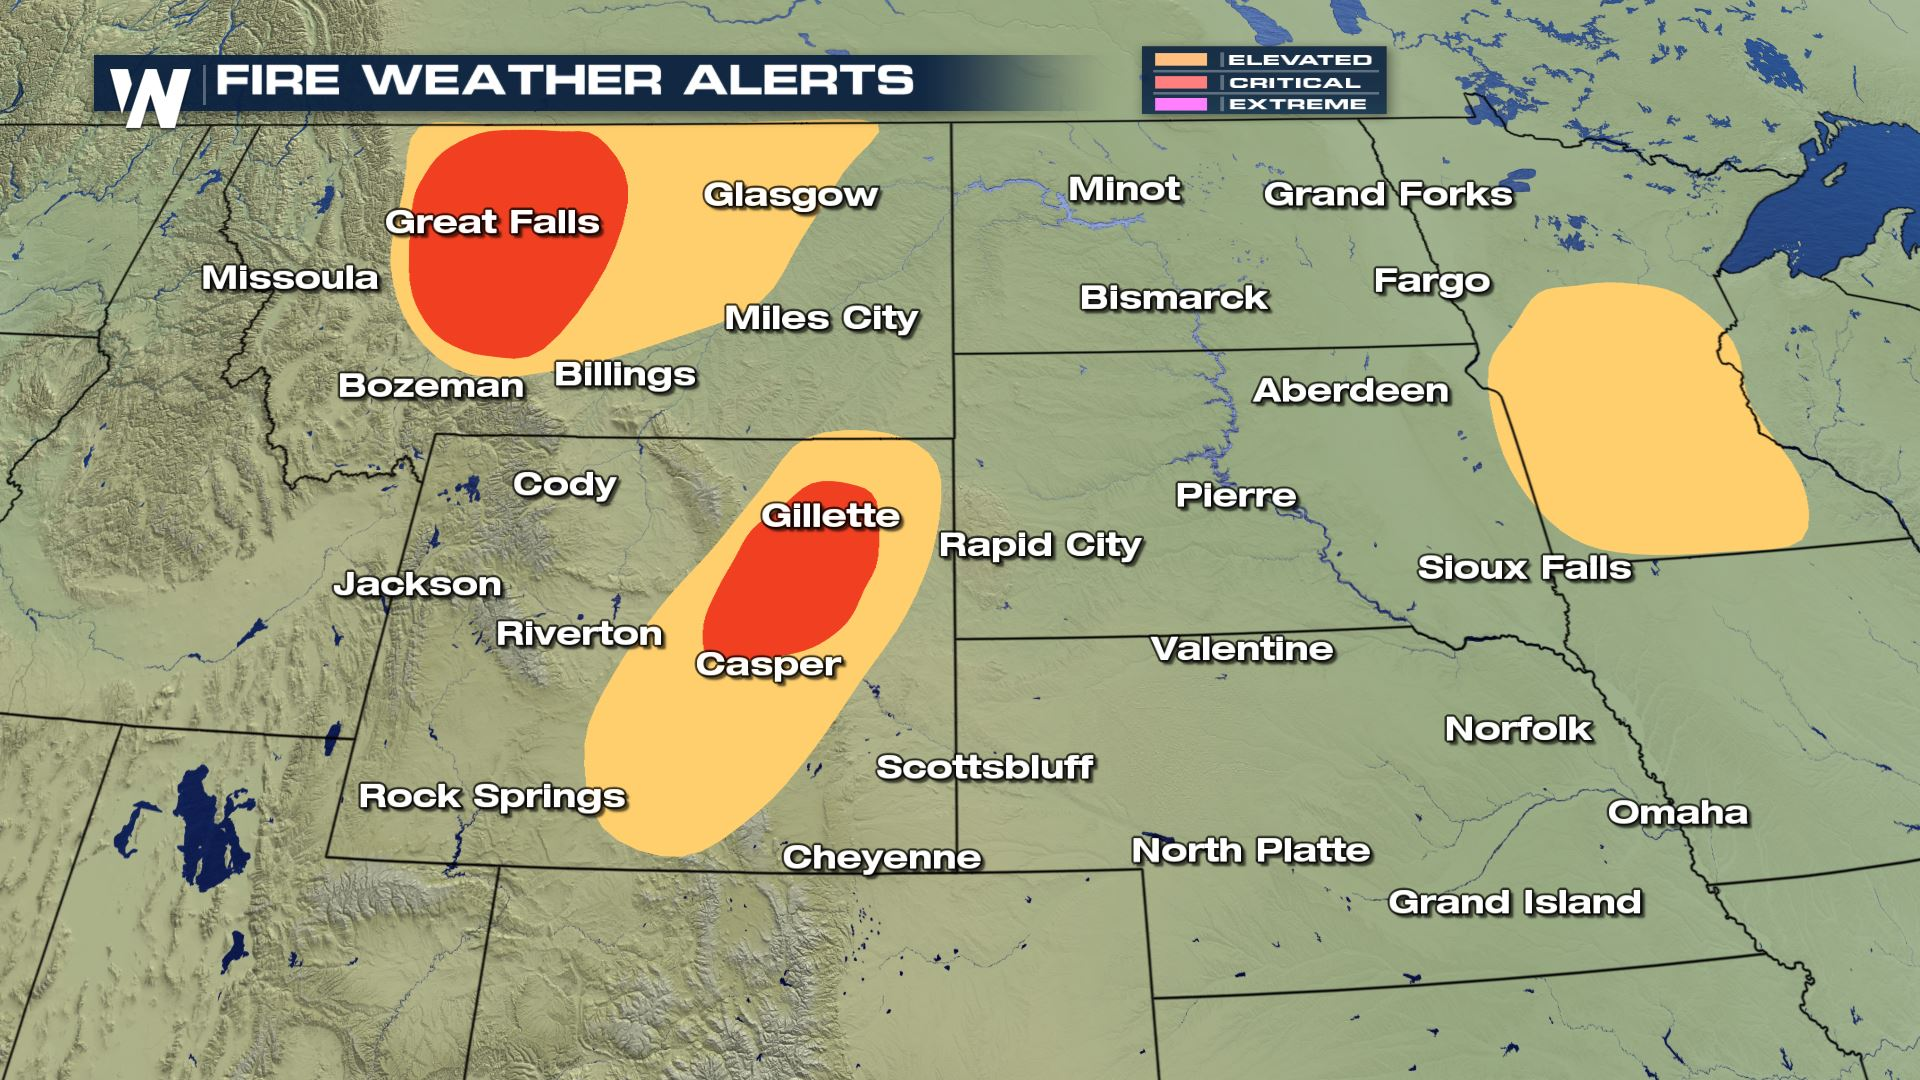 Critical Fire Weather Conditions for Montana and Wyoming - WeatherNation